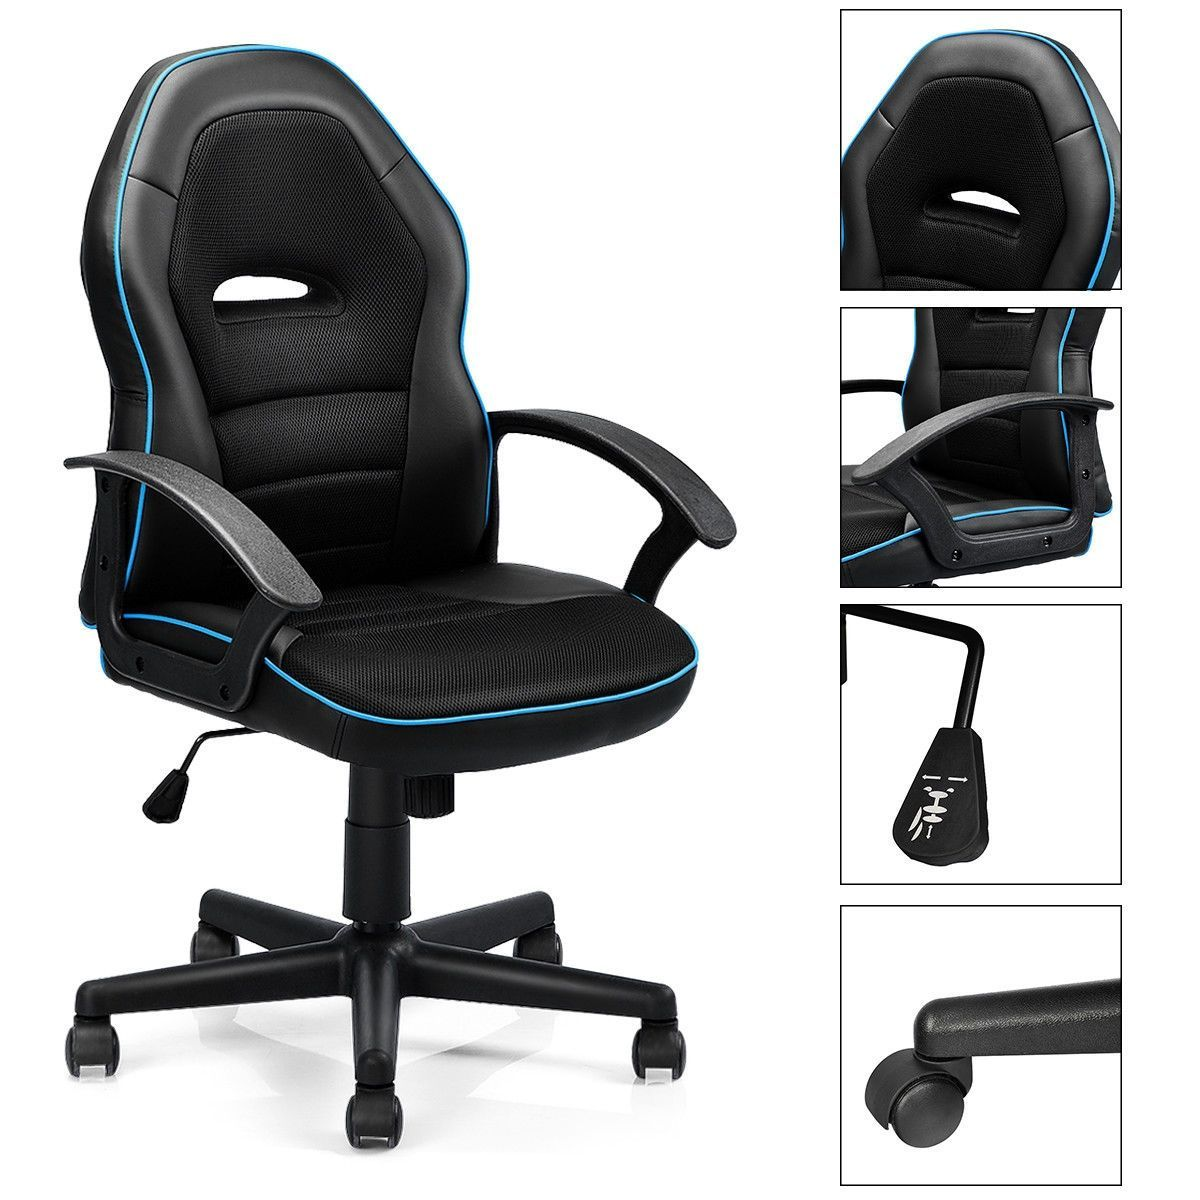 Gaming Chair Mid-Back Office Chair Racing Chair for Swivel Desk,  #Chair #Desk #gamestoplaywithfriends #Gaming #MidBack #office #Racing #Swivel